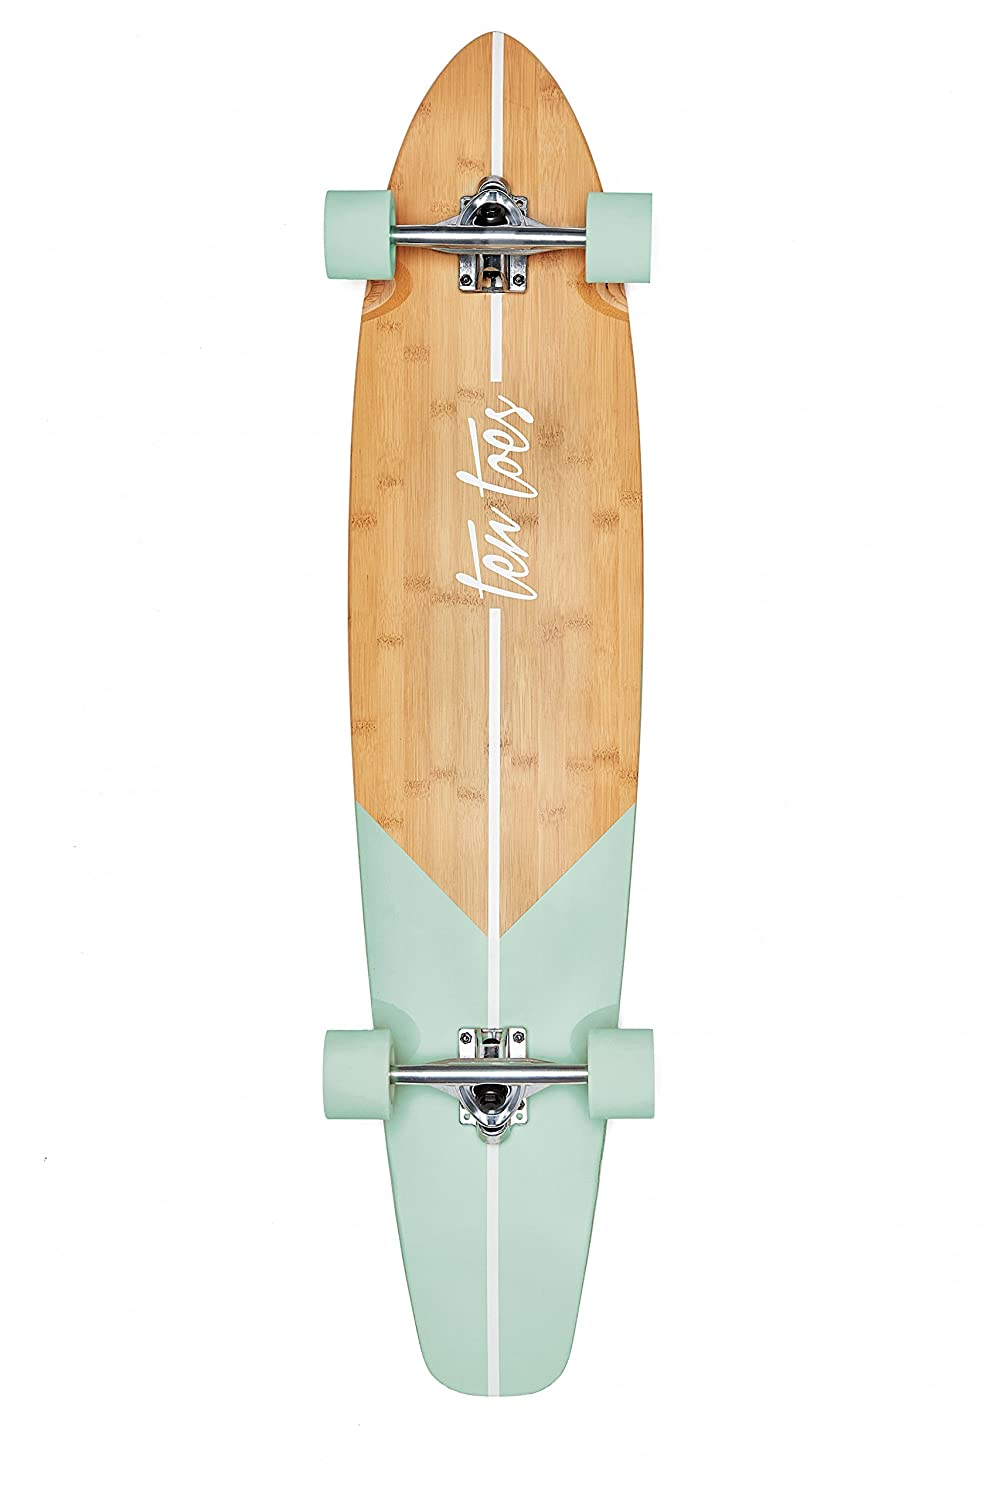 Longboard Skateboards | Amazon.com on stupid skateboard designs, old skateboard designs, weird skateboard designs, beach skateboard designs, homemade finger pulls, cool skateboard designs, top skateboard designs, tumblr skateboard designs, best skateboard designs, diy skateboard designs, emo skateboard designs, girl skateboard designs, cartoon skateboard designs, homemade longboard, camoflauge skateboard designs, sexy skateboard designs, amazing skateboard designs, black skateboard designs, handmade skateboard designs, easy skateboard designs,